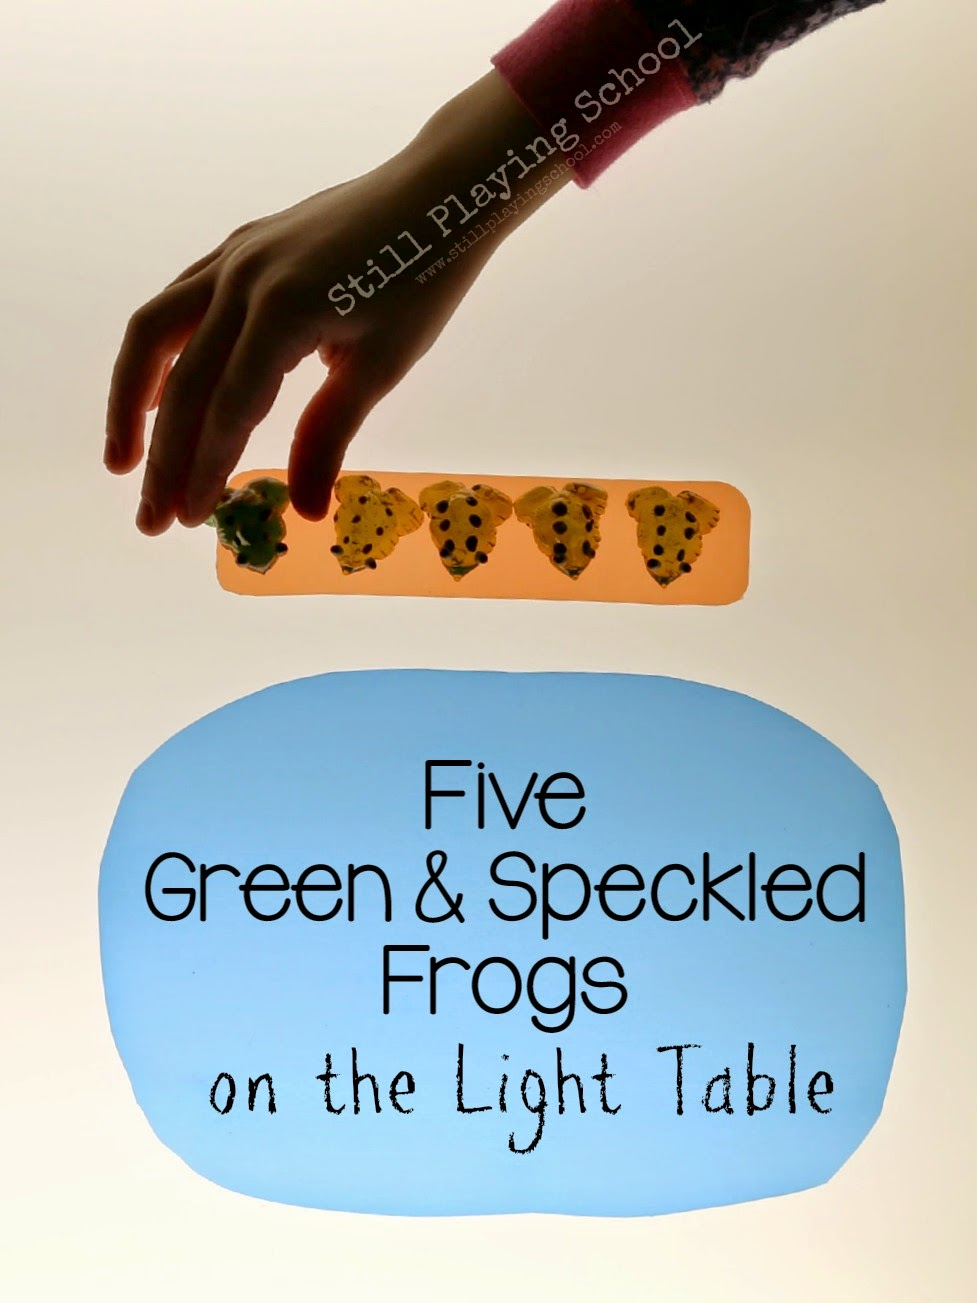 Five Green and Speckled Frogs on the Light Table